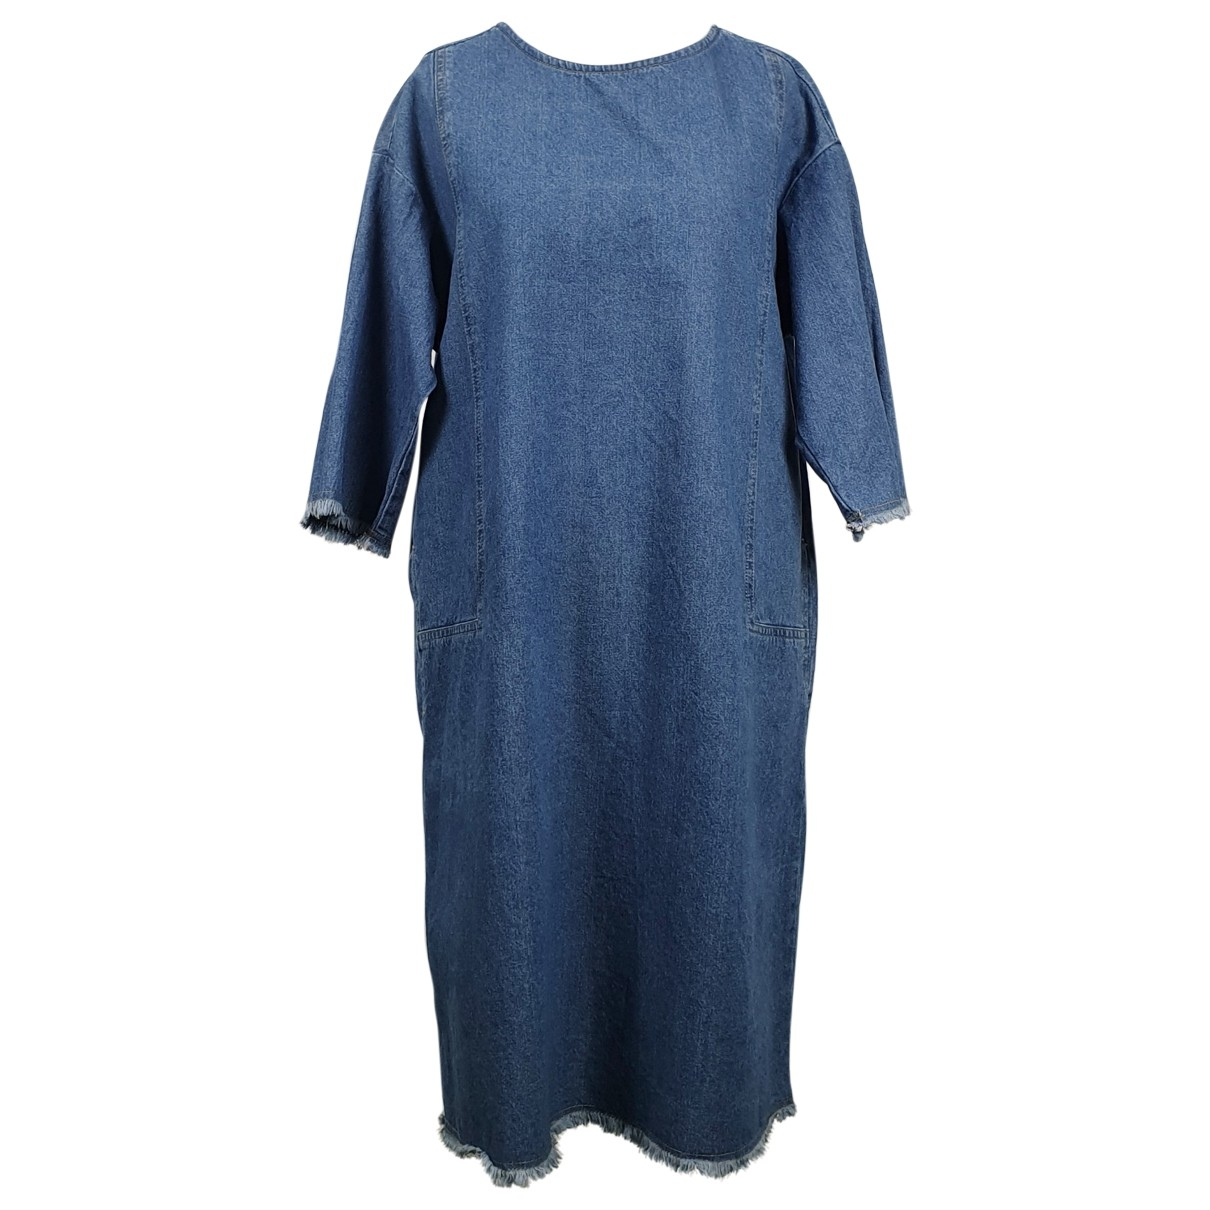 Non Signé / Unsigned \N Turquoise Denim - Jeans dress for Women One Size FR